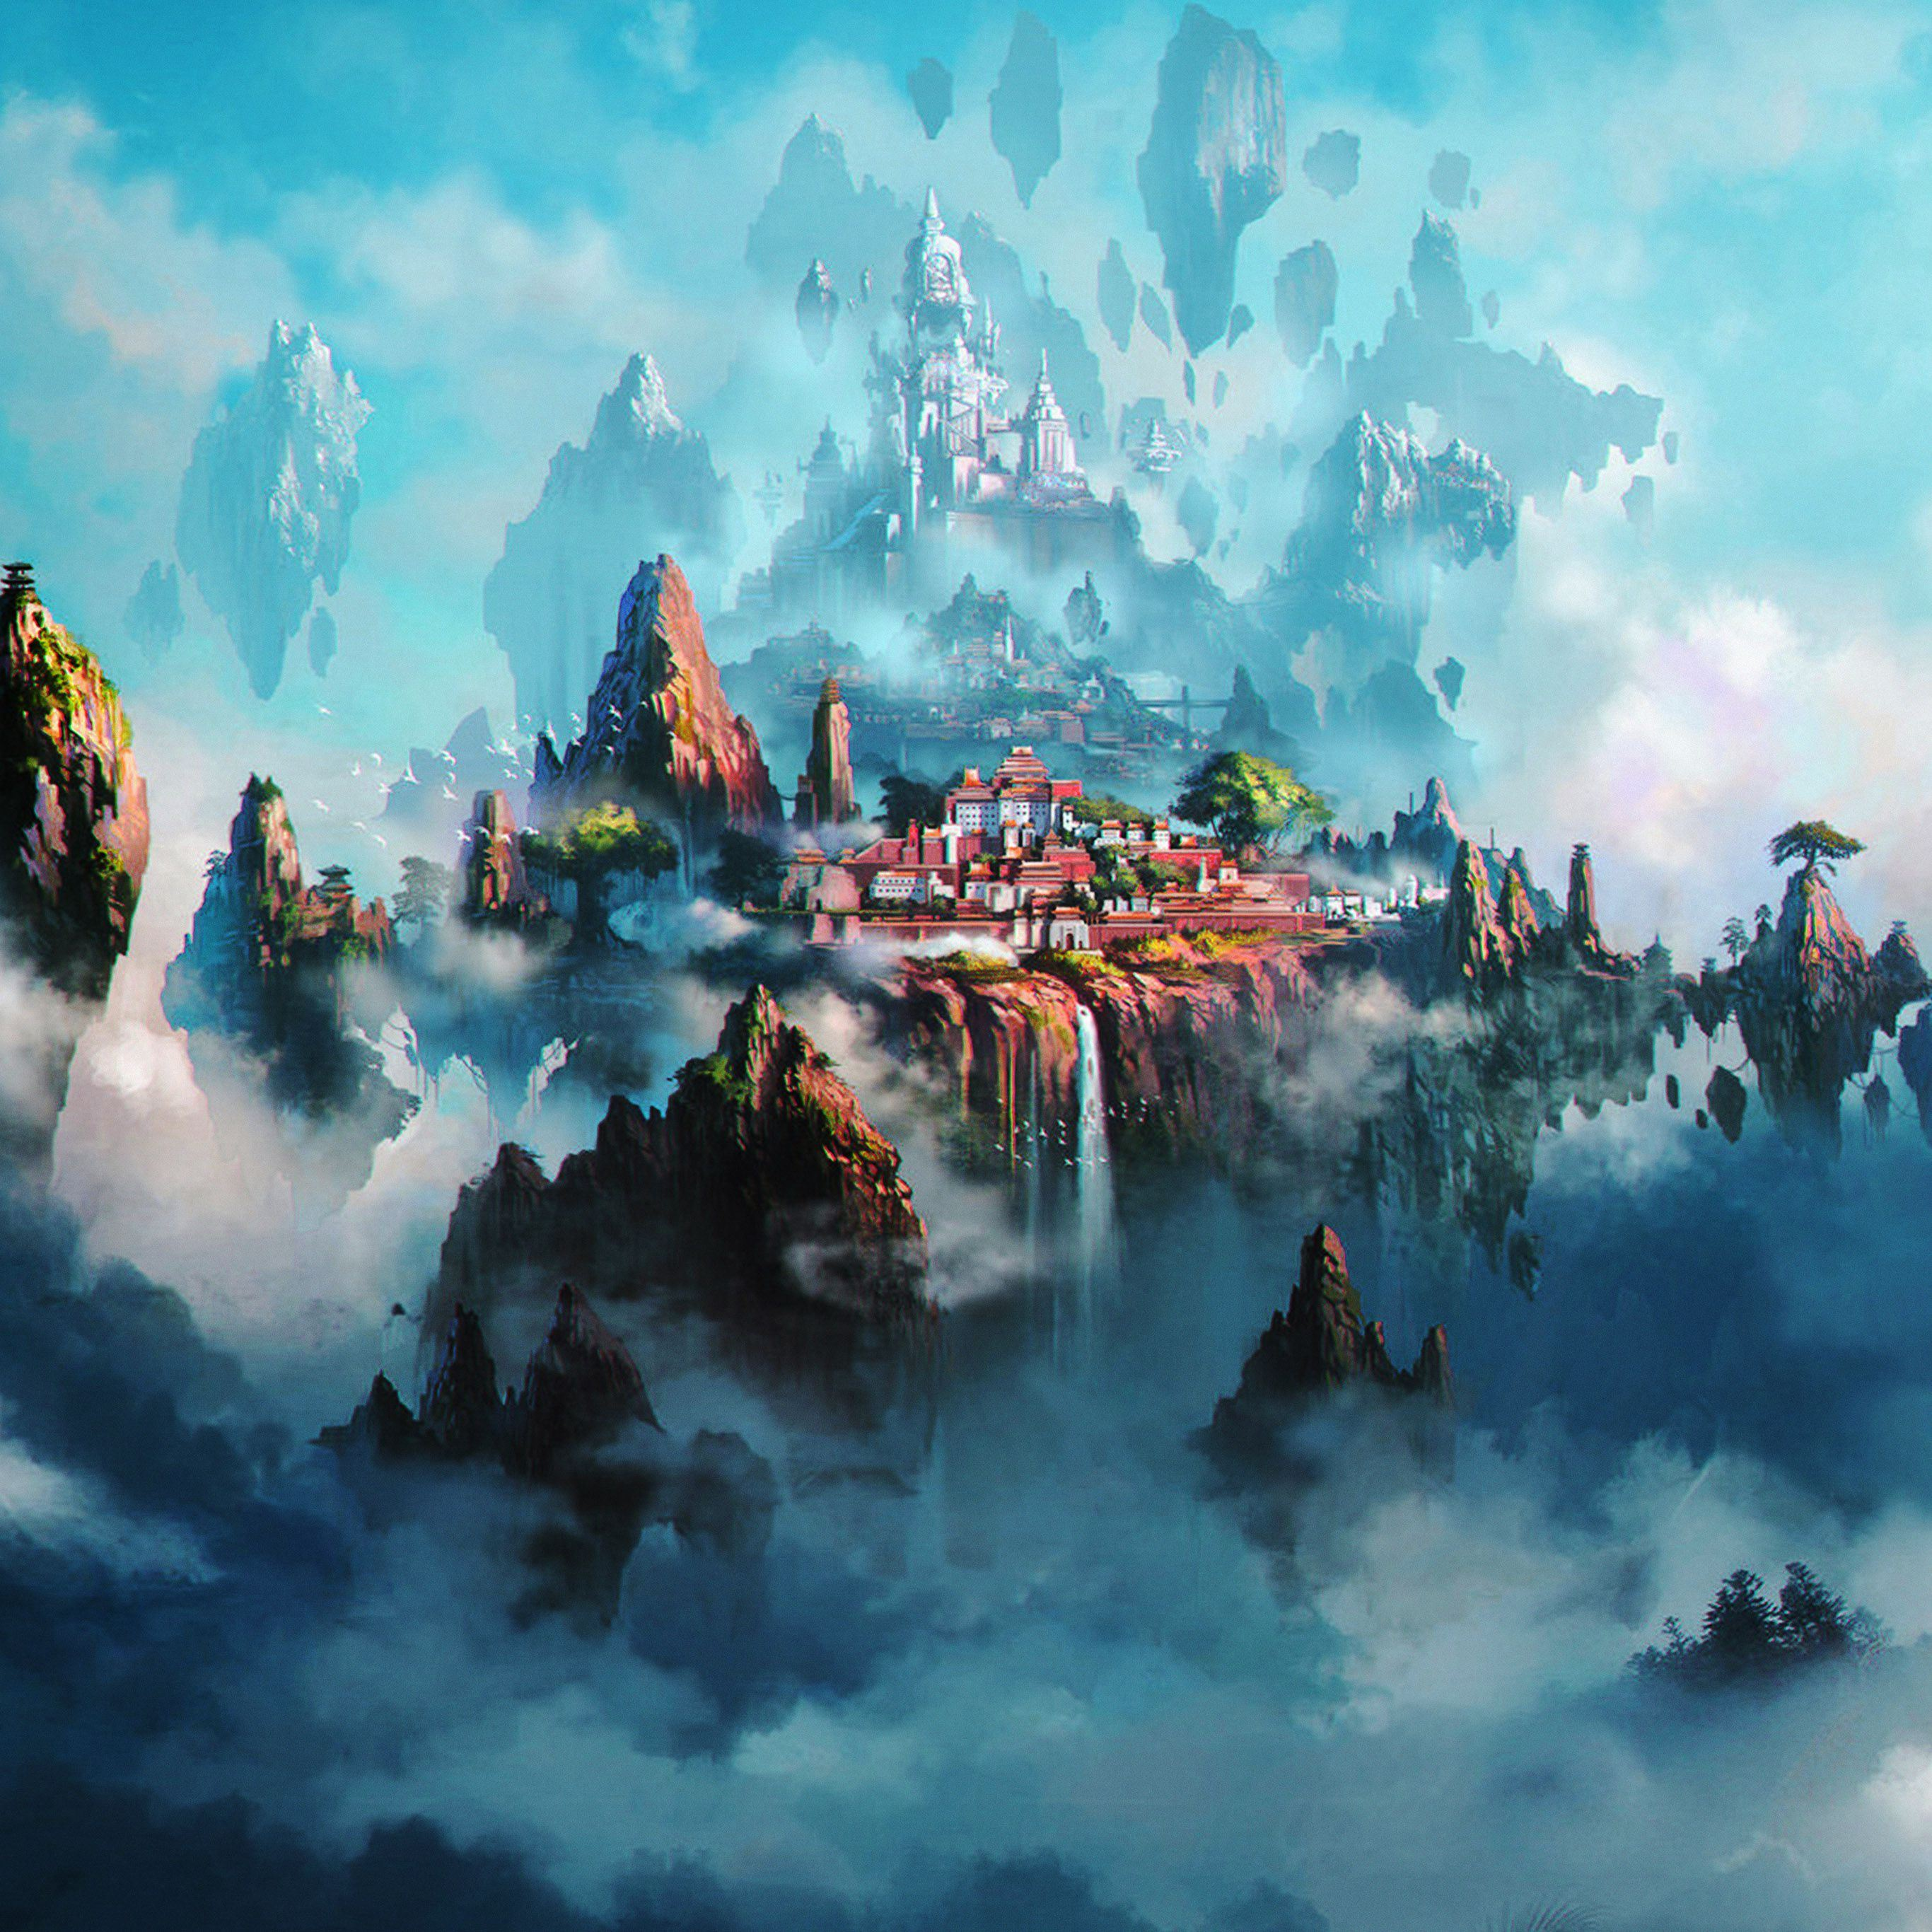 Cloud Town Fantasy Anime Ipad Pro Wallpapers Free Download